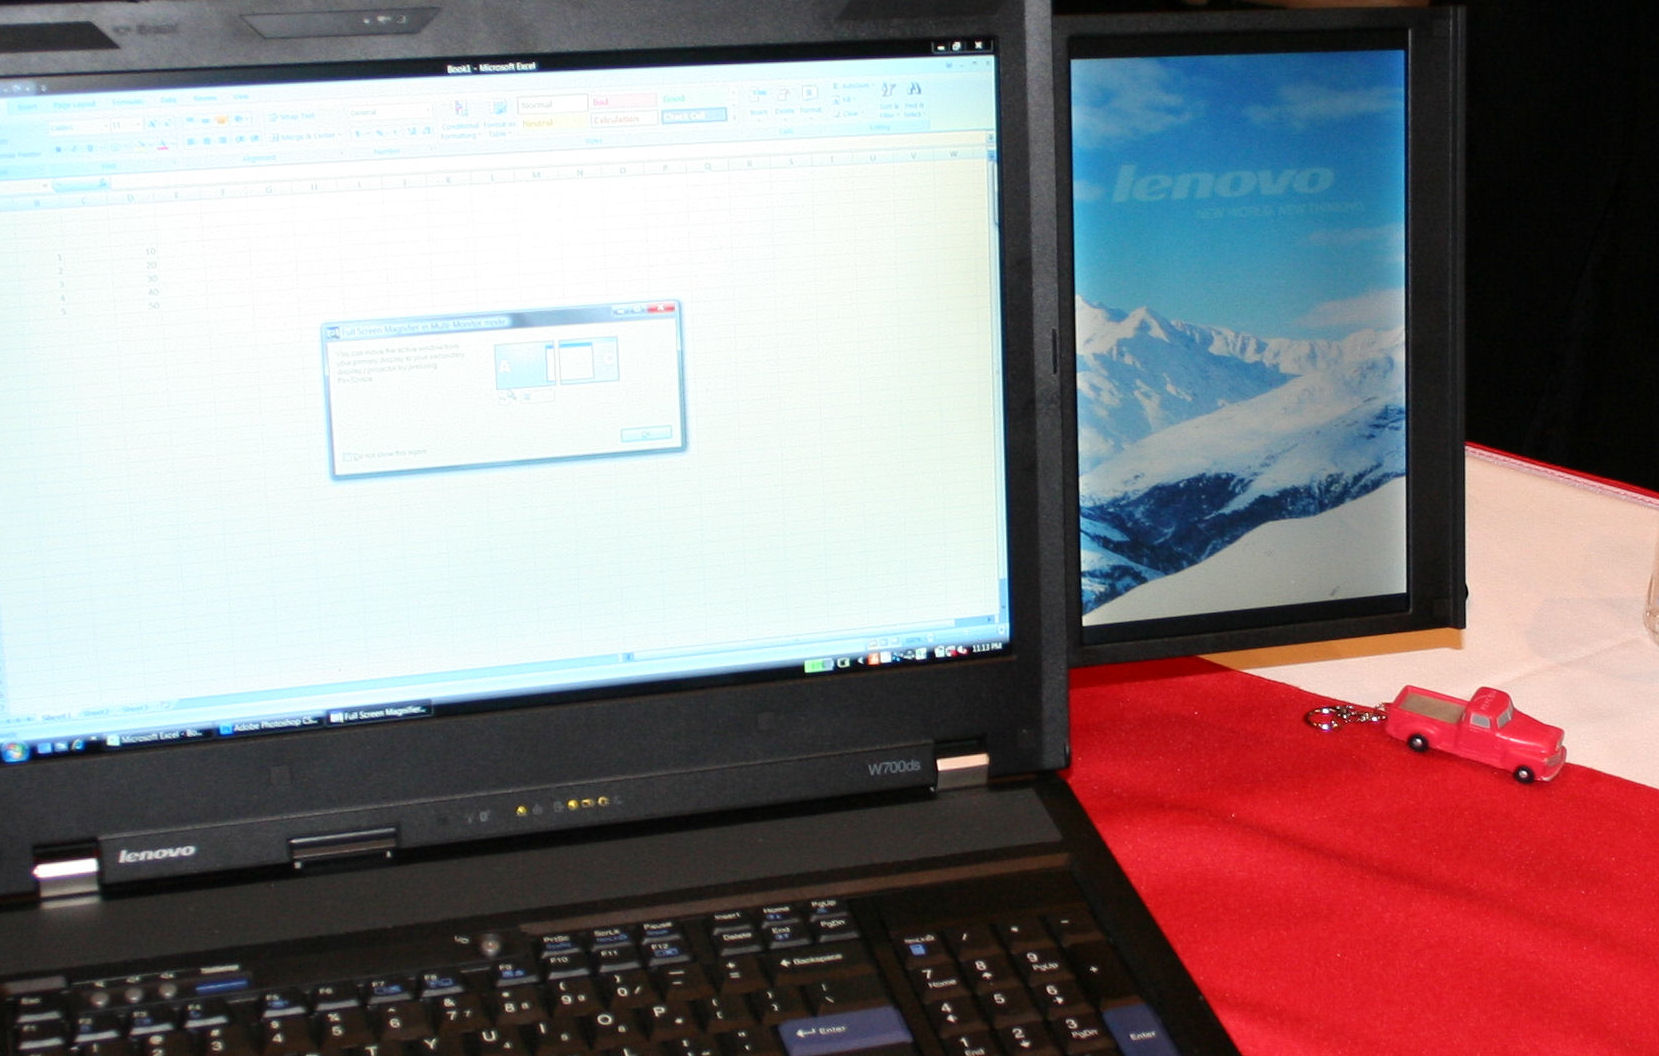 Lenovo's $5,000 workstation notebook has two screens